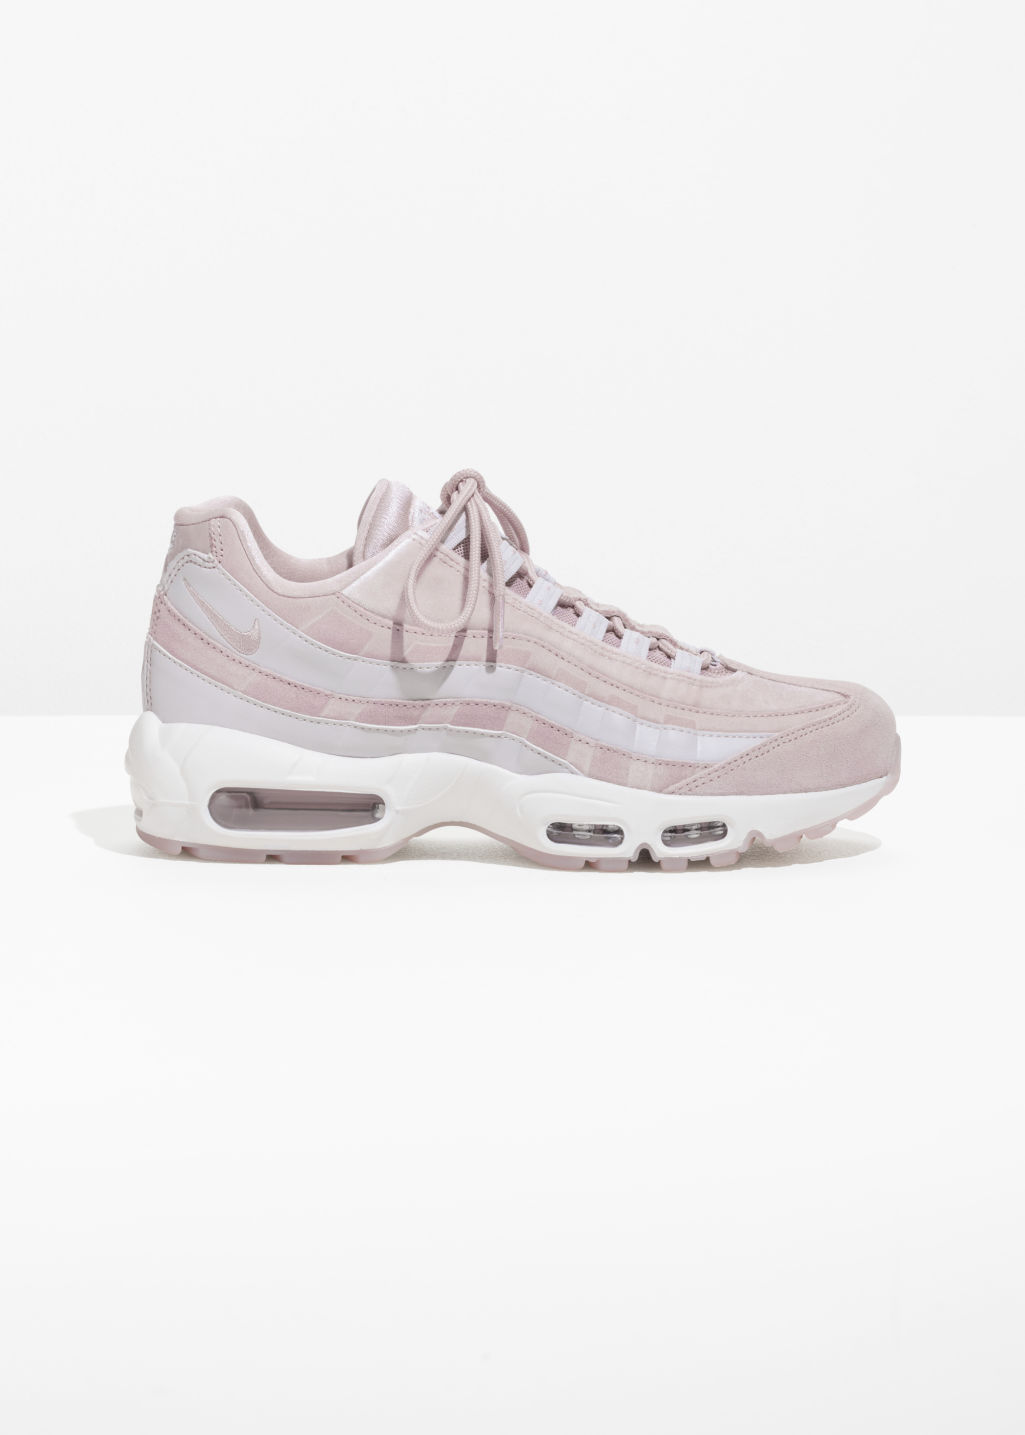 & OTHER STORIES Nike Air Max 95 PRM Finishline Online pfHnRe6